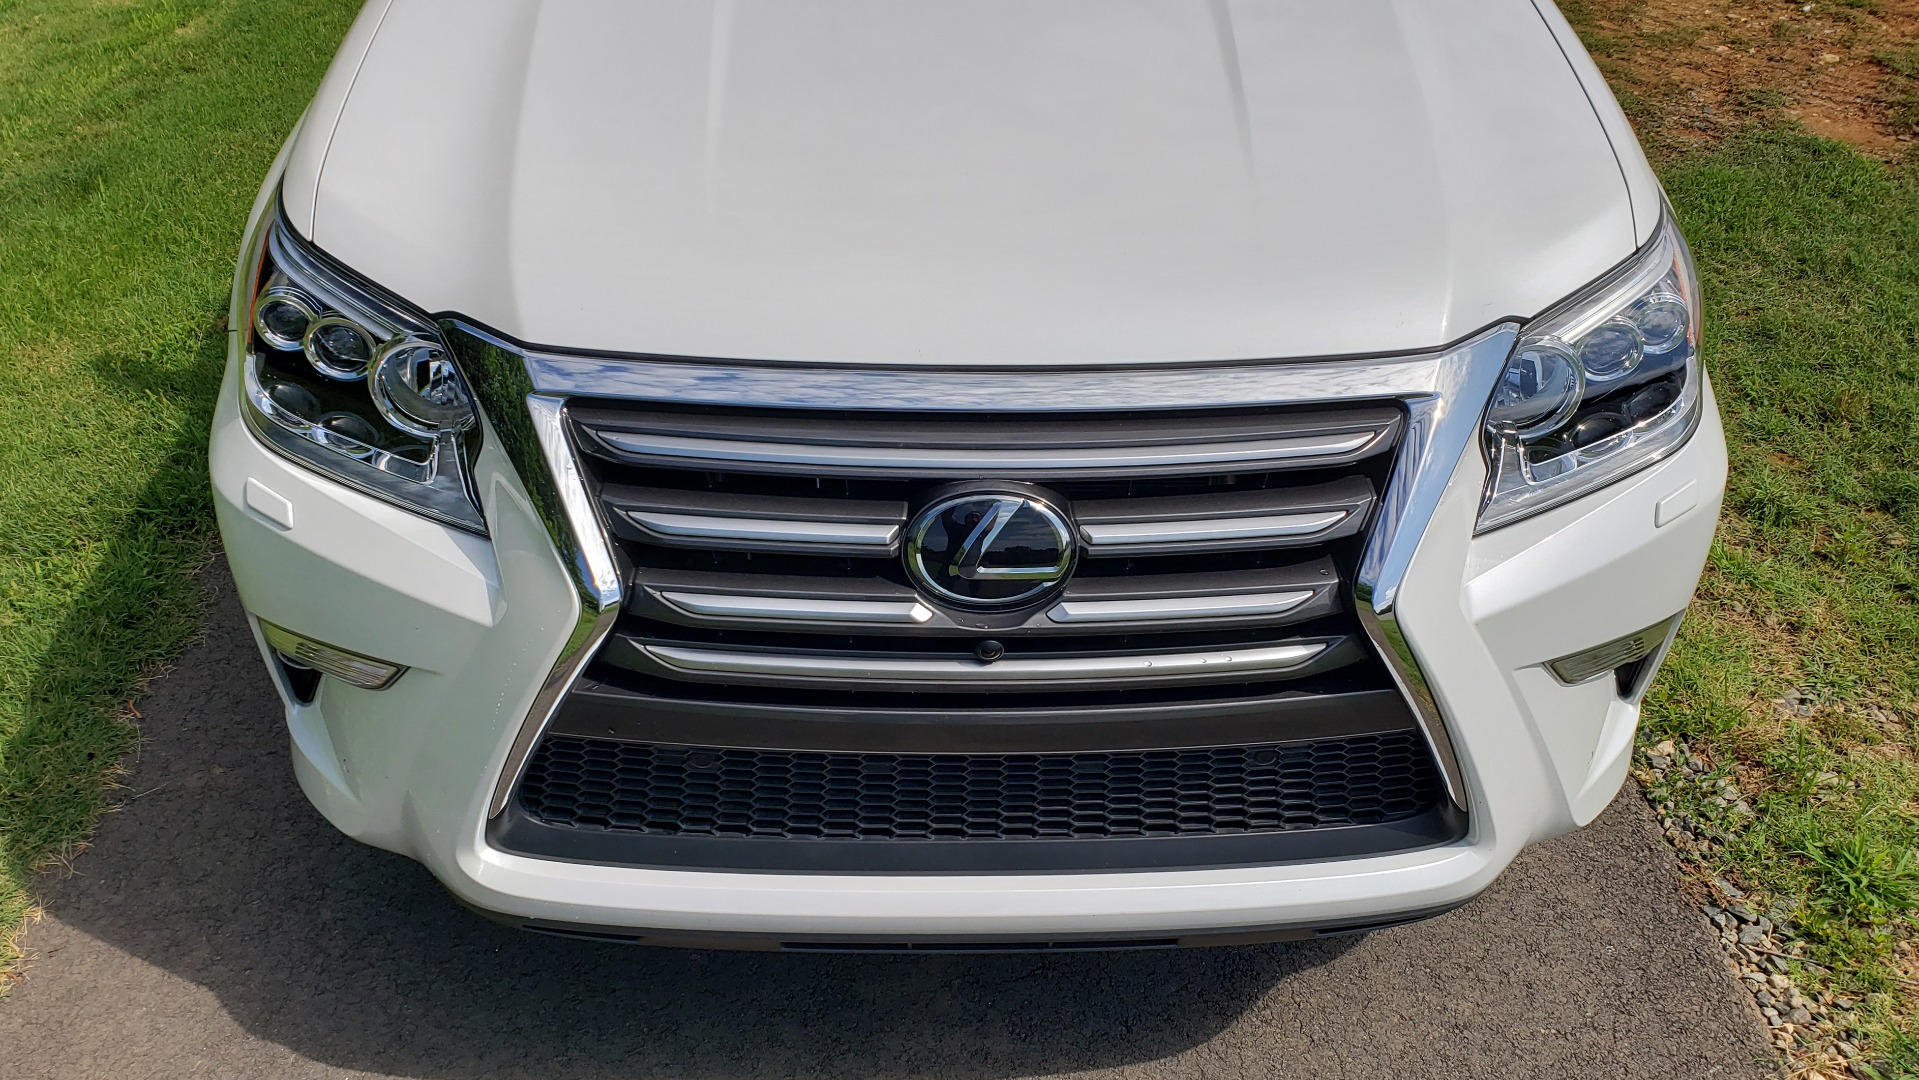 Used 2019 Lexus GX 460 LUXURY 4WD / DRVR SPRT PKG / MARK LEV SND / DYN CRUISE for sale Sold at Formula Imports in Charlotte NC 28227 13